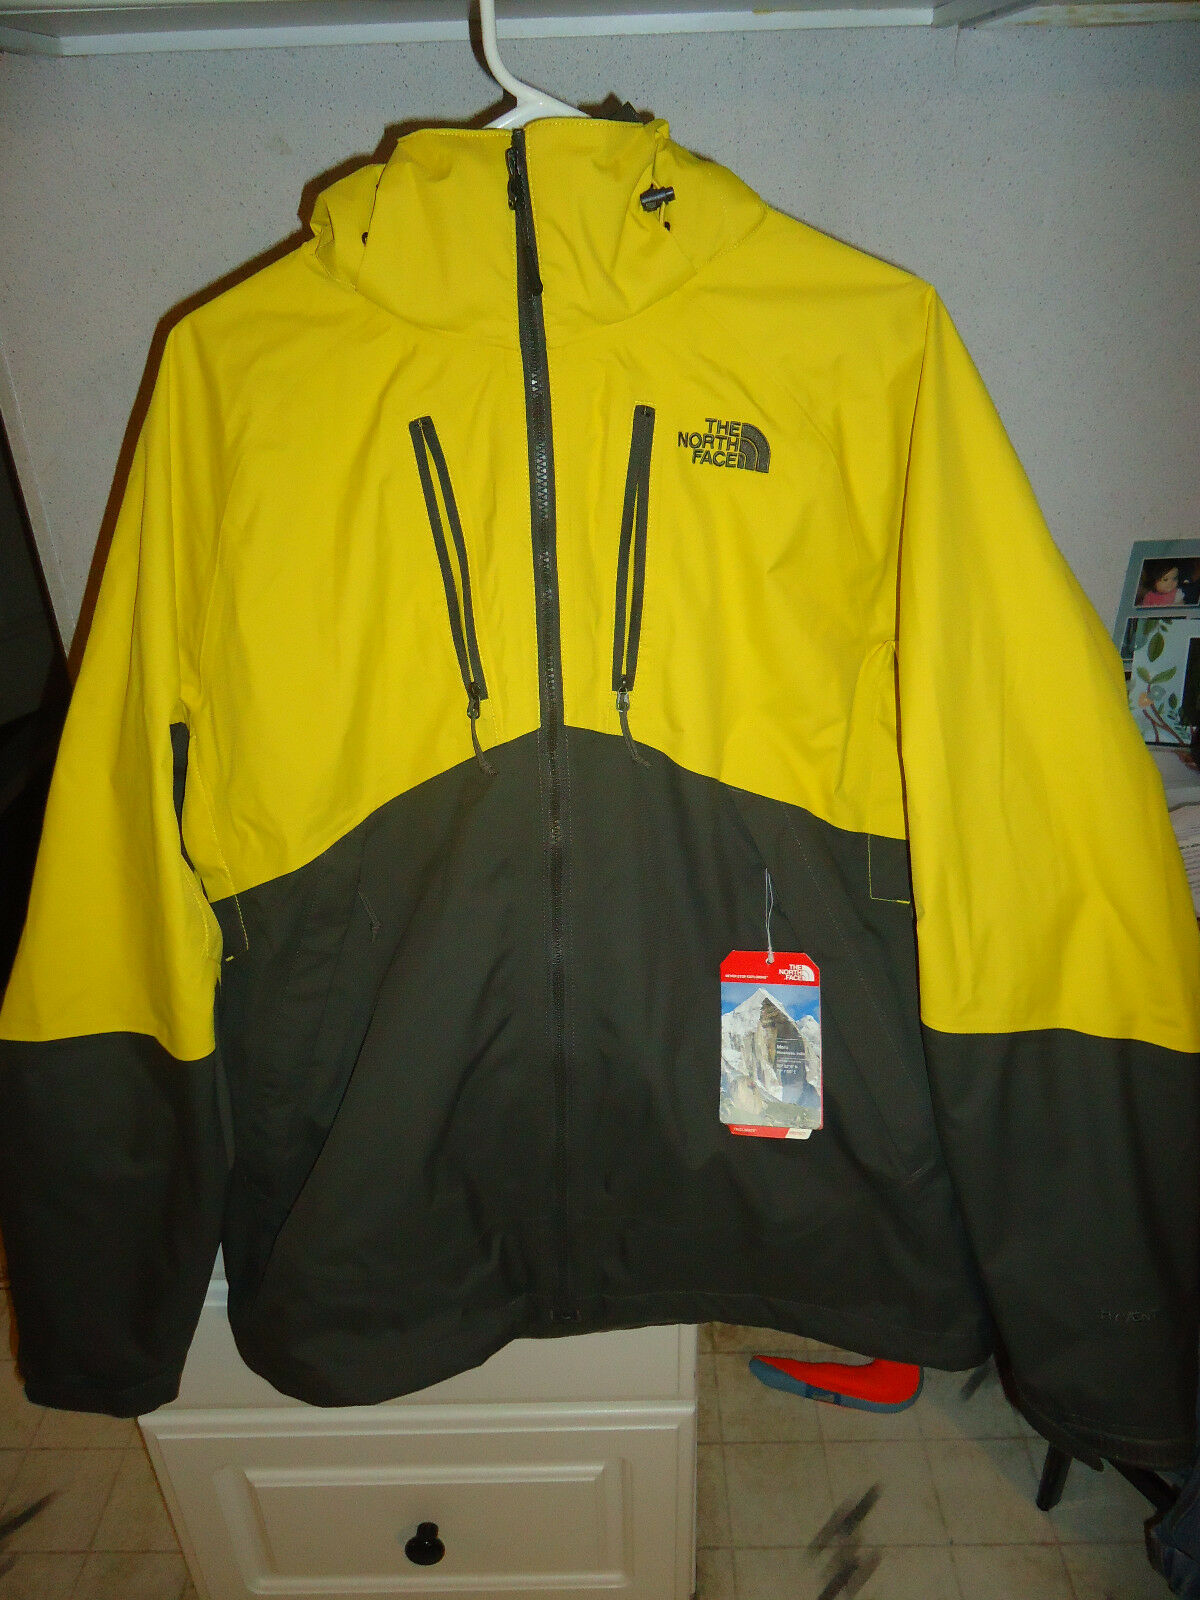 THE NORTH FACE CONDOR TRICLIMATE 3-IN-1 JACKET MEN'S MEDIUM (M) SRP $290